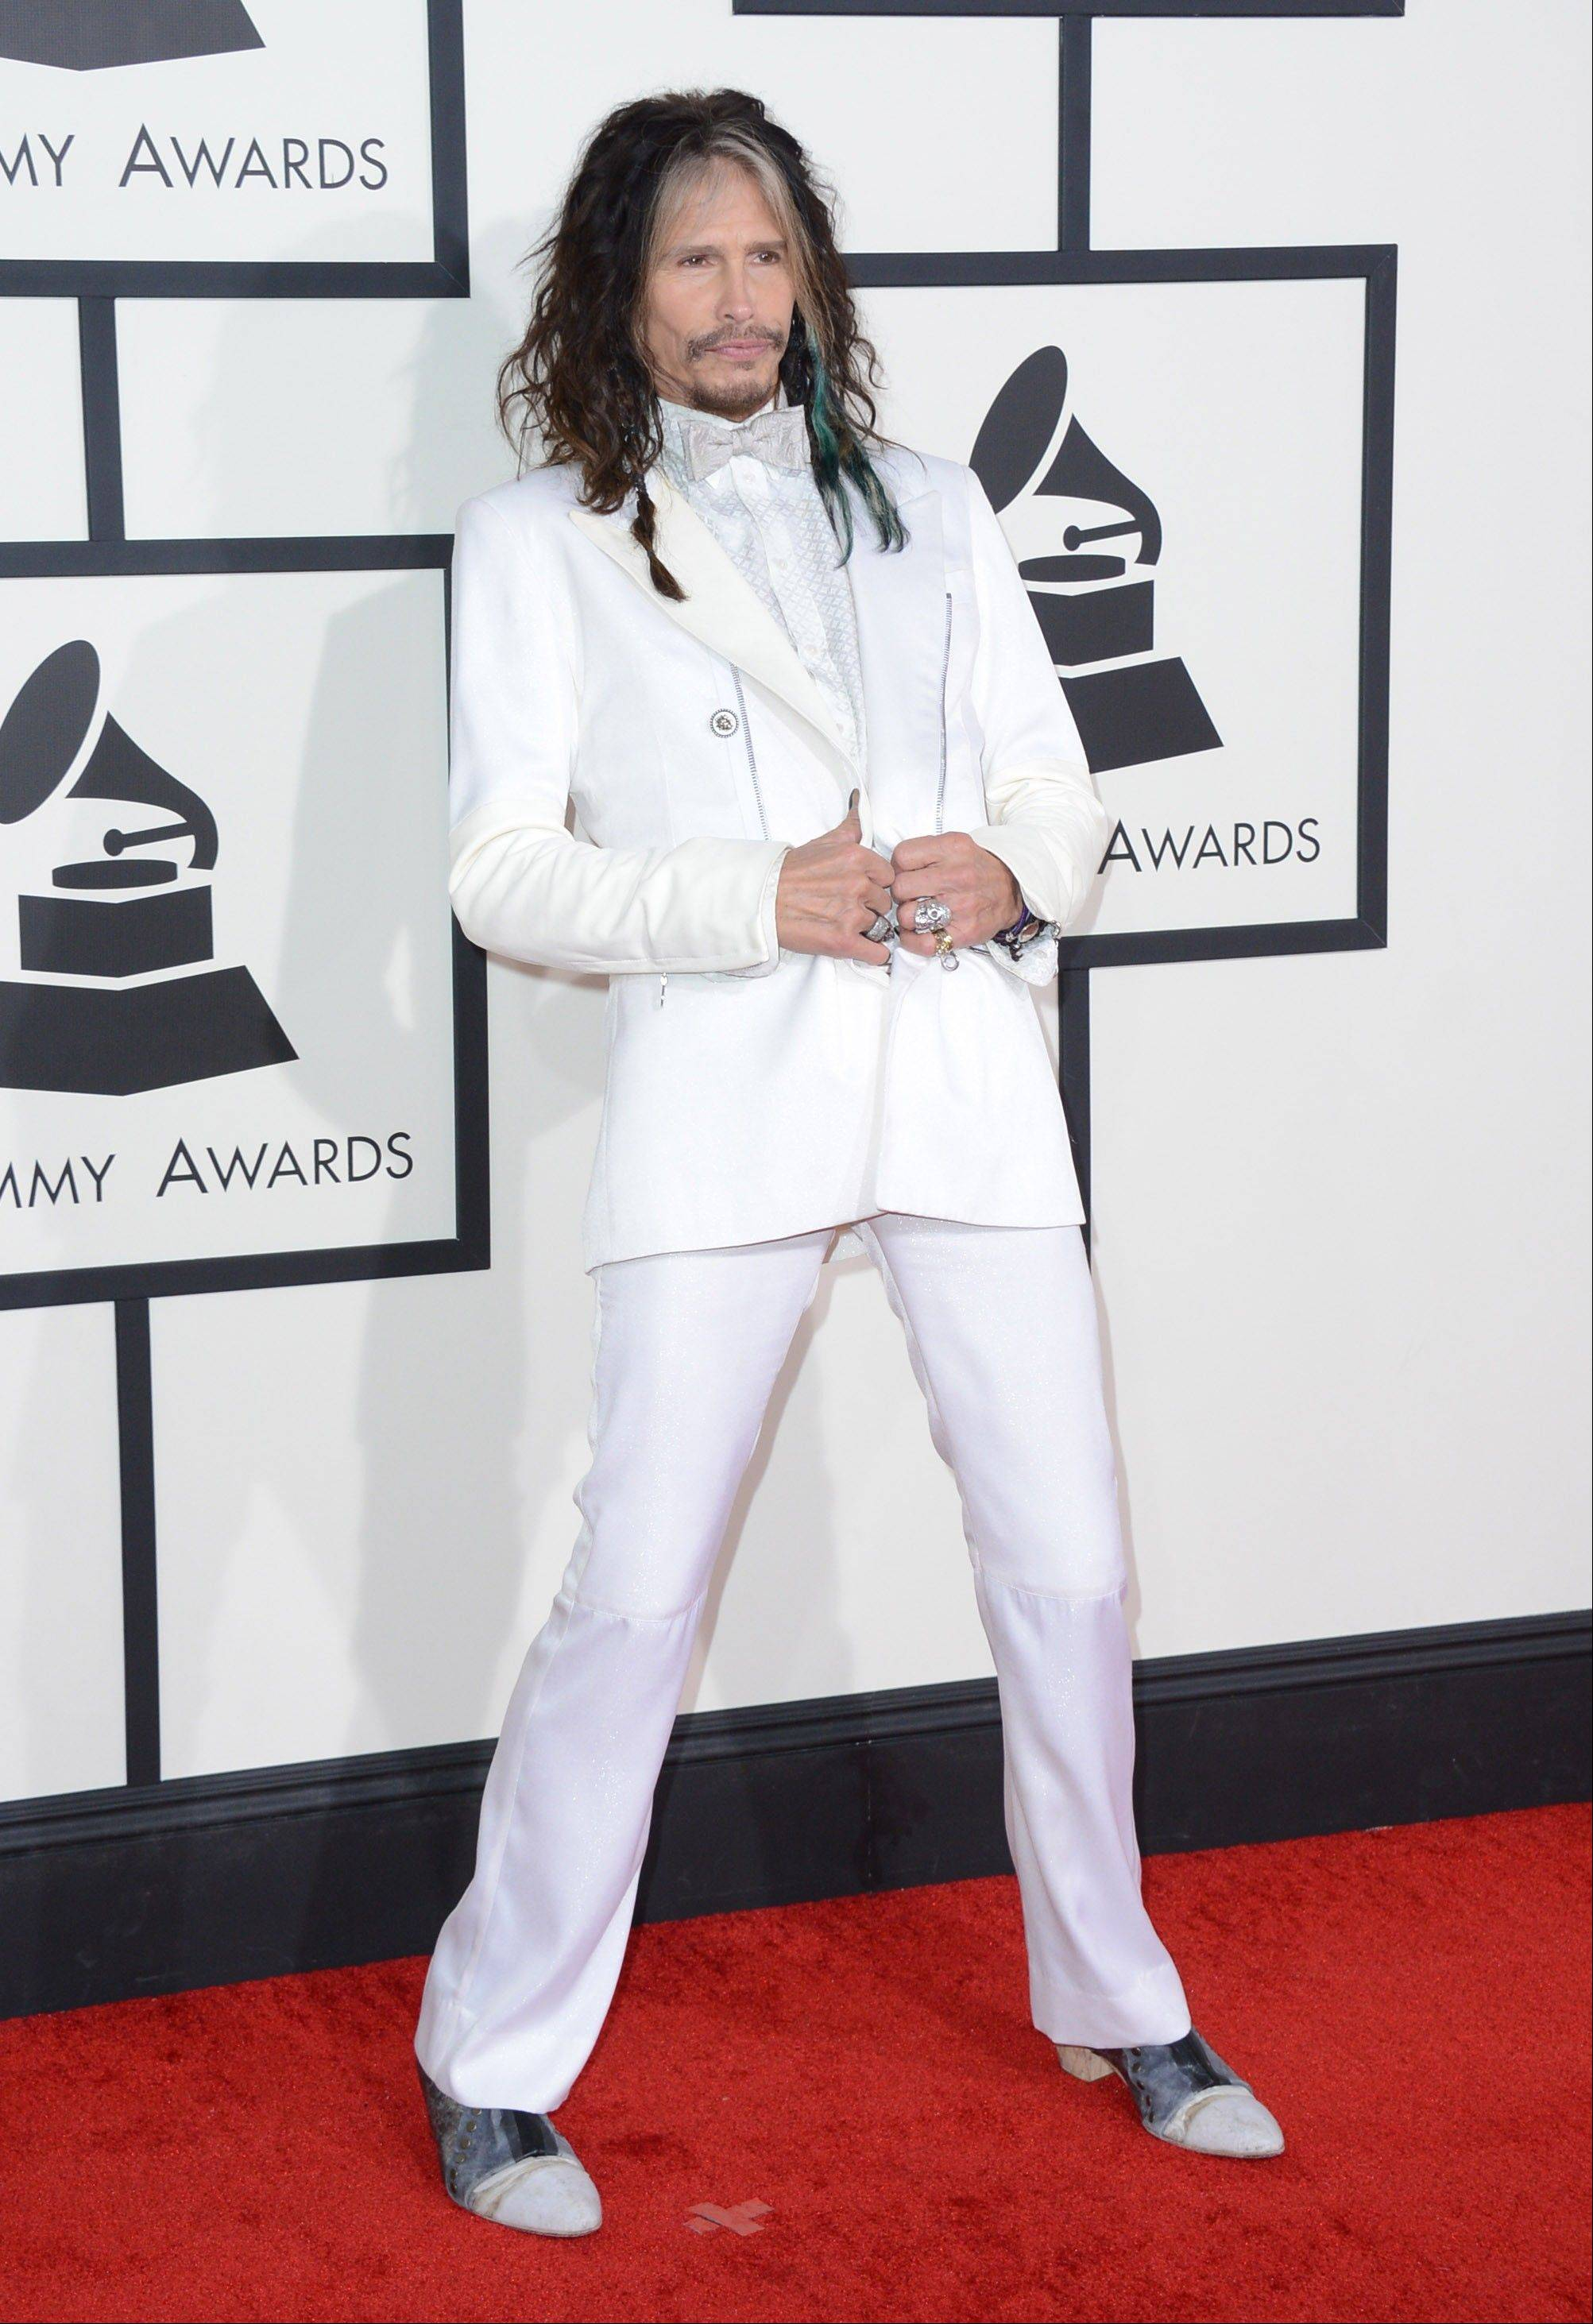 Steven Tyler arrives at the 56th annual Grammy Awards at Staples Center on Sunday.